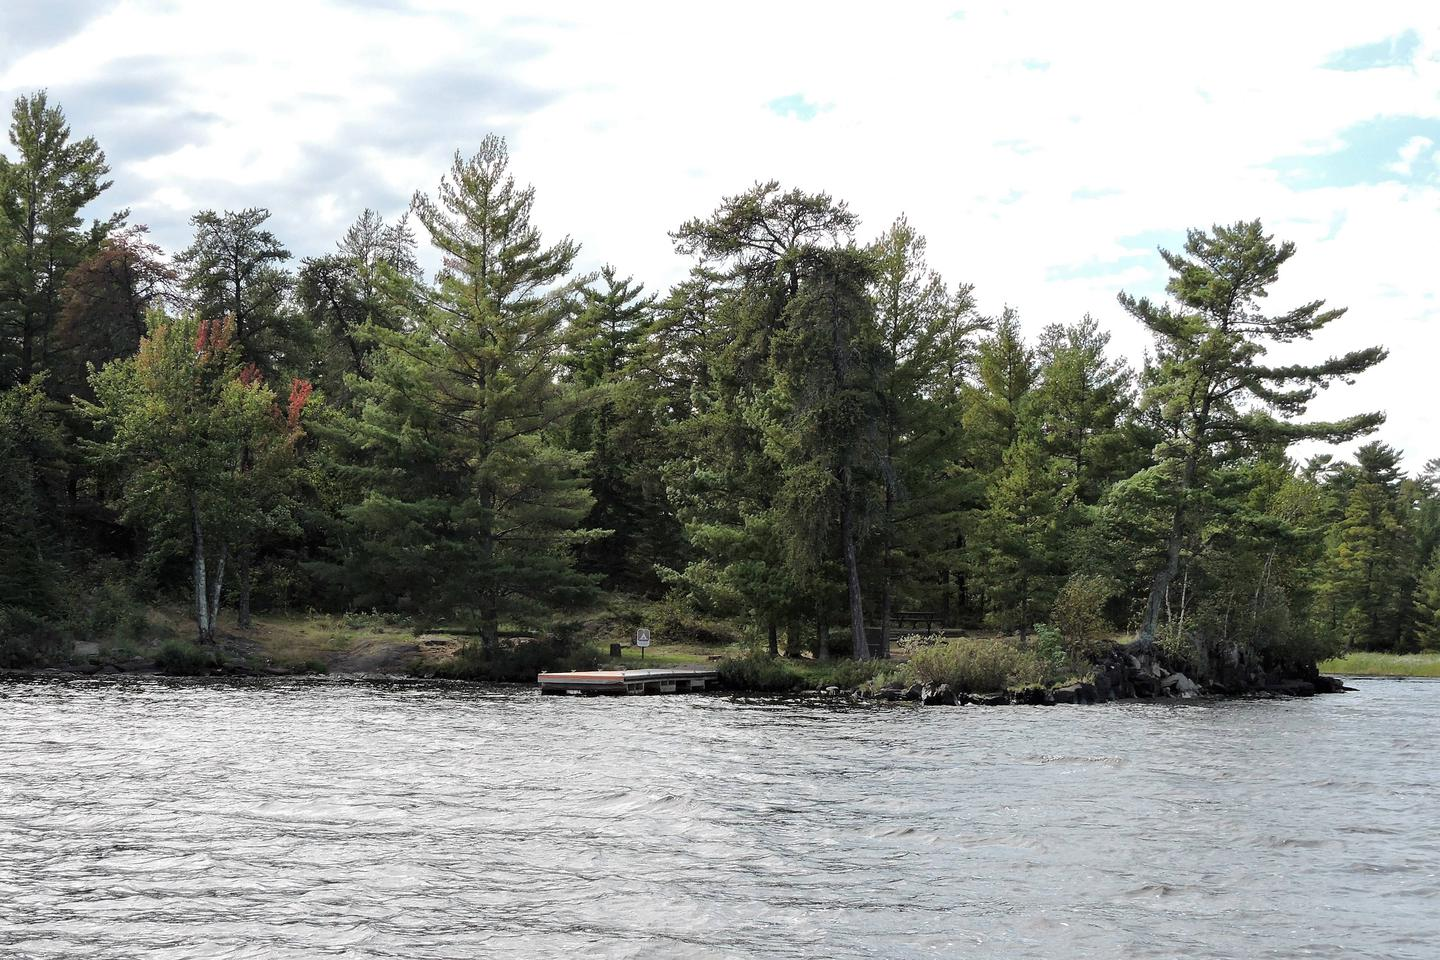 R62 - Krantz PointView of campsite from the water